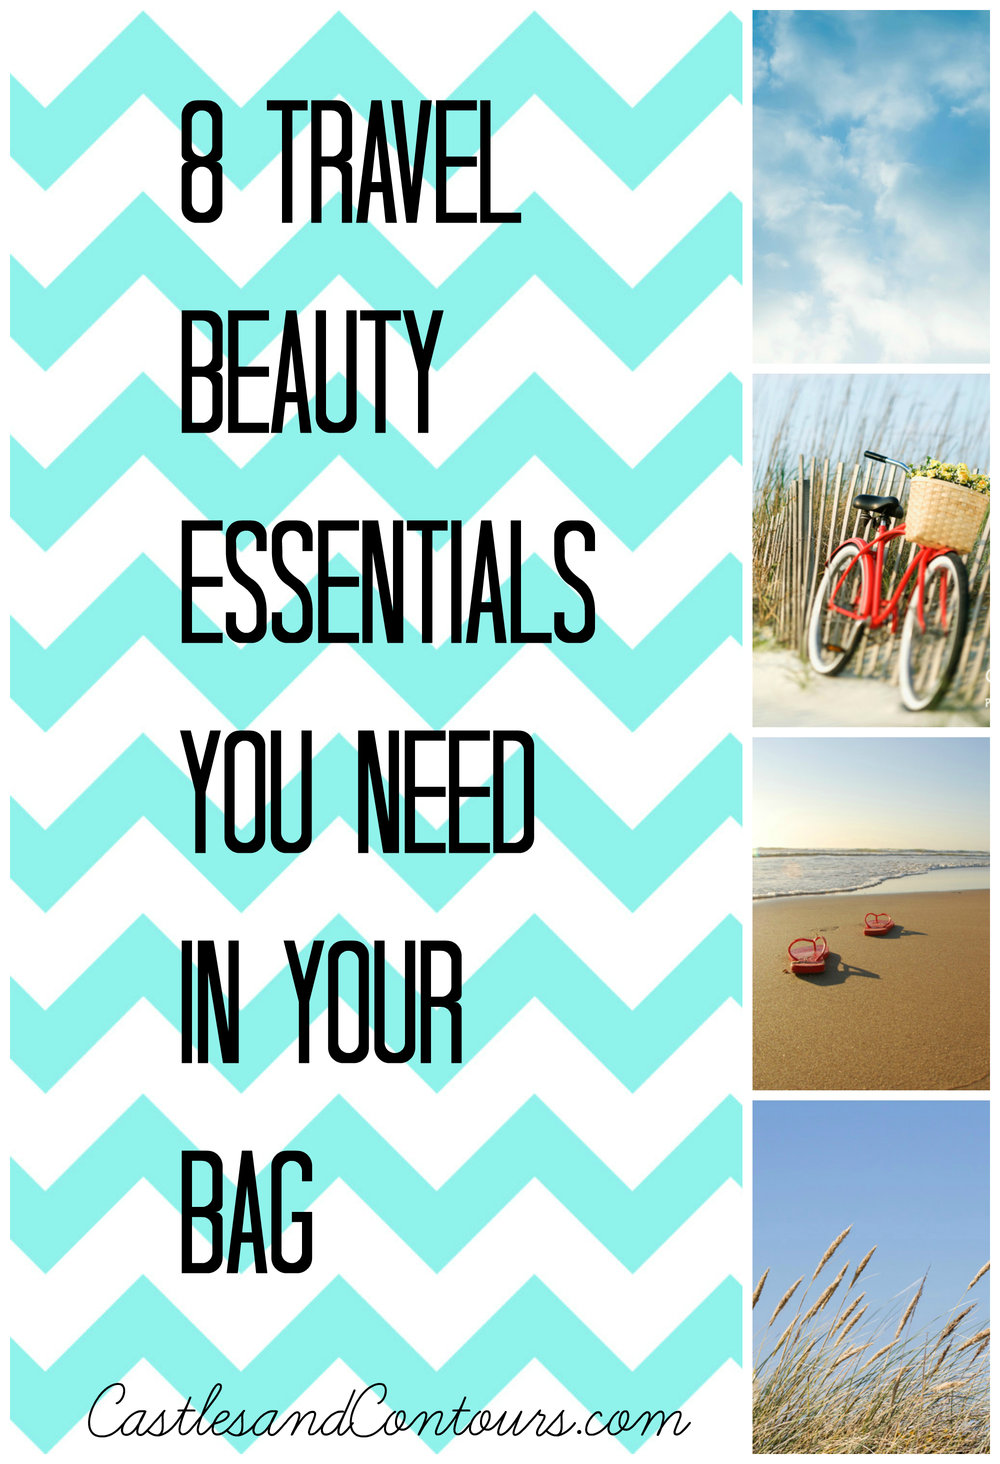 8 Travel Essentials Everyone Needs in Their Bag! - CastlesandContours.com